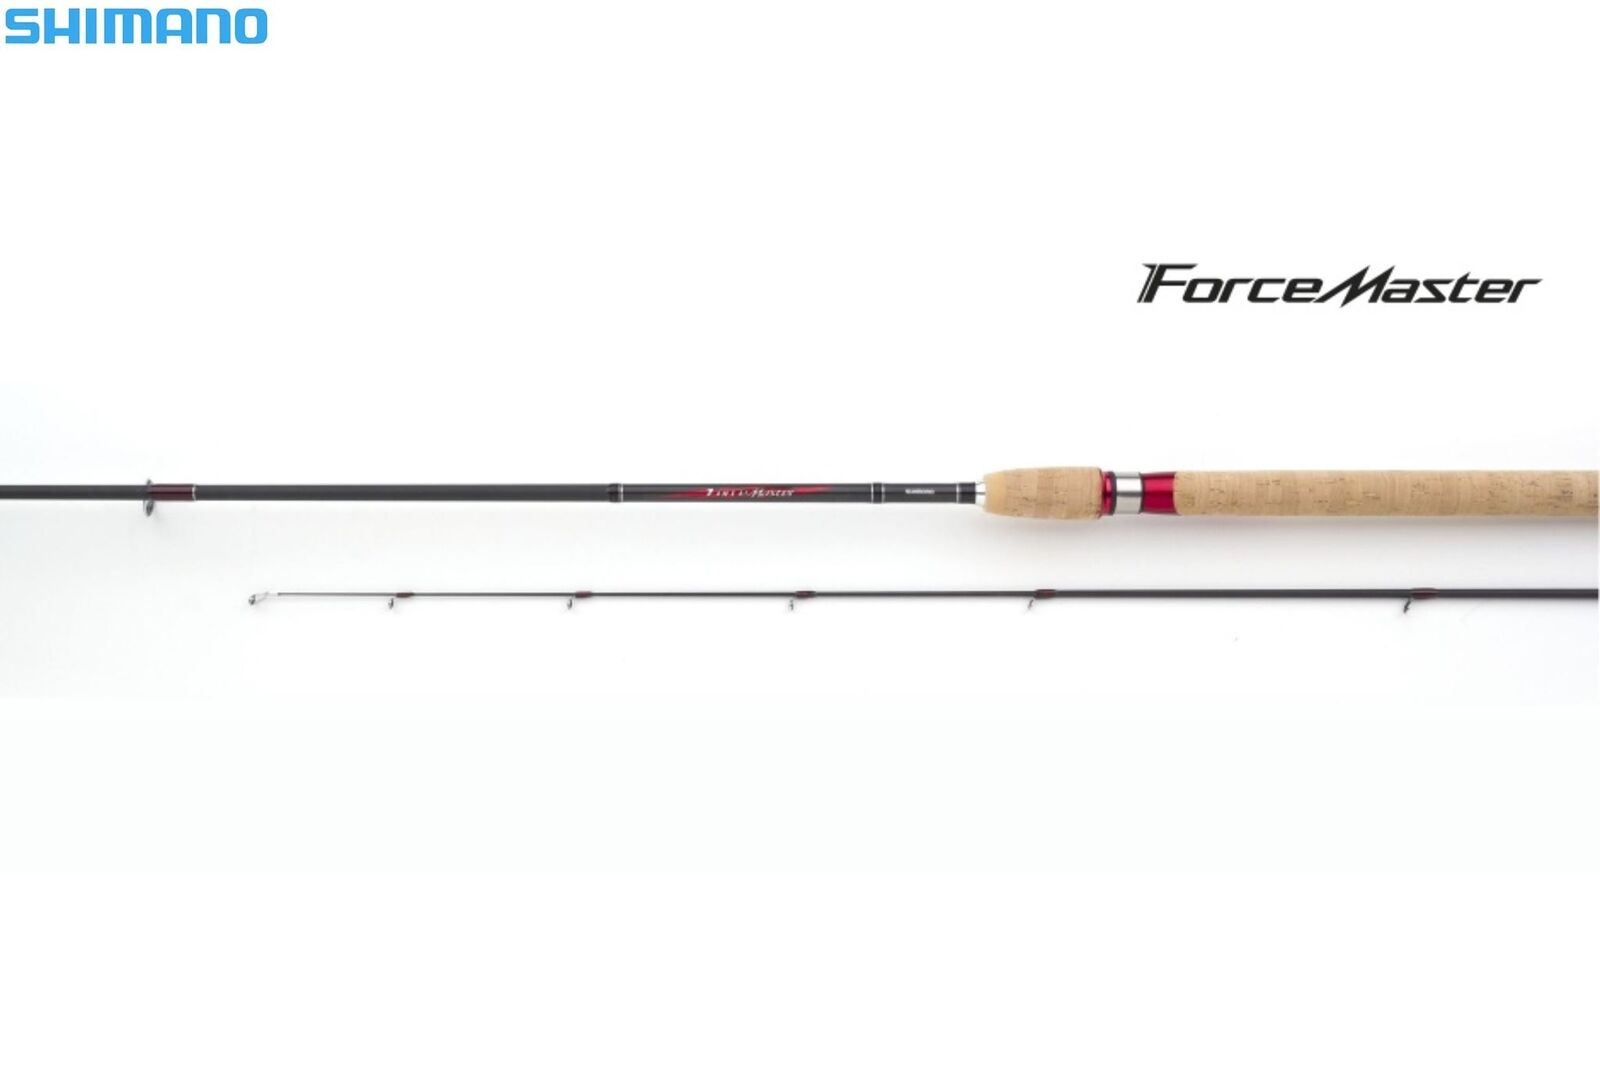 Shimano forcemaster spinning rod 2 Pieces  2.40m 2.70m 5-28g Small Bait Action  up to 65% off